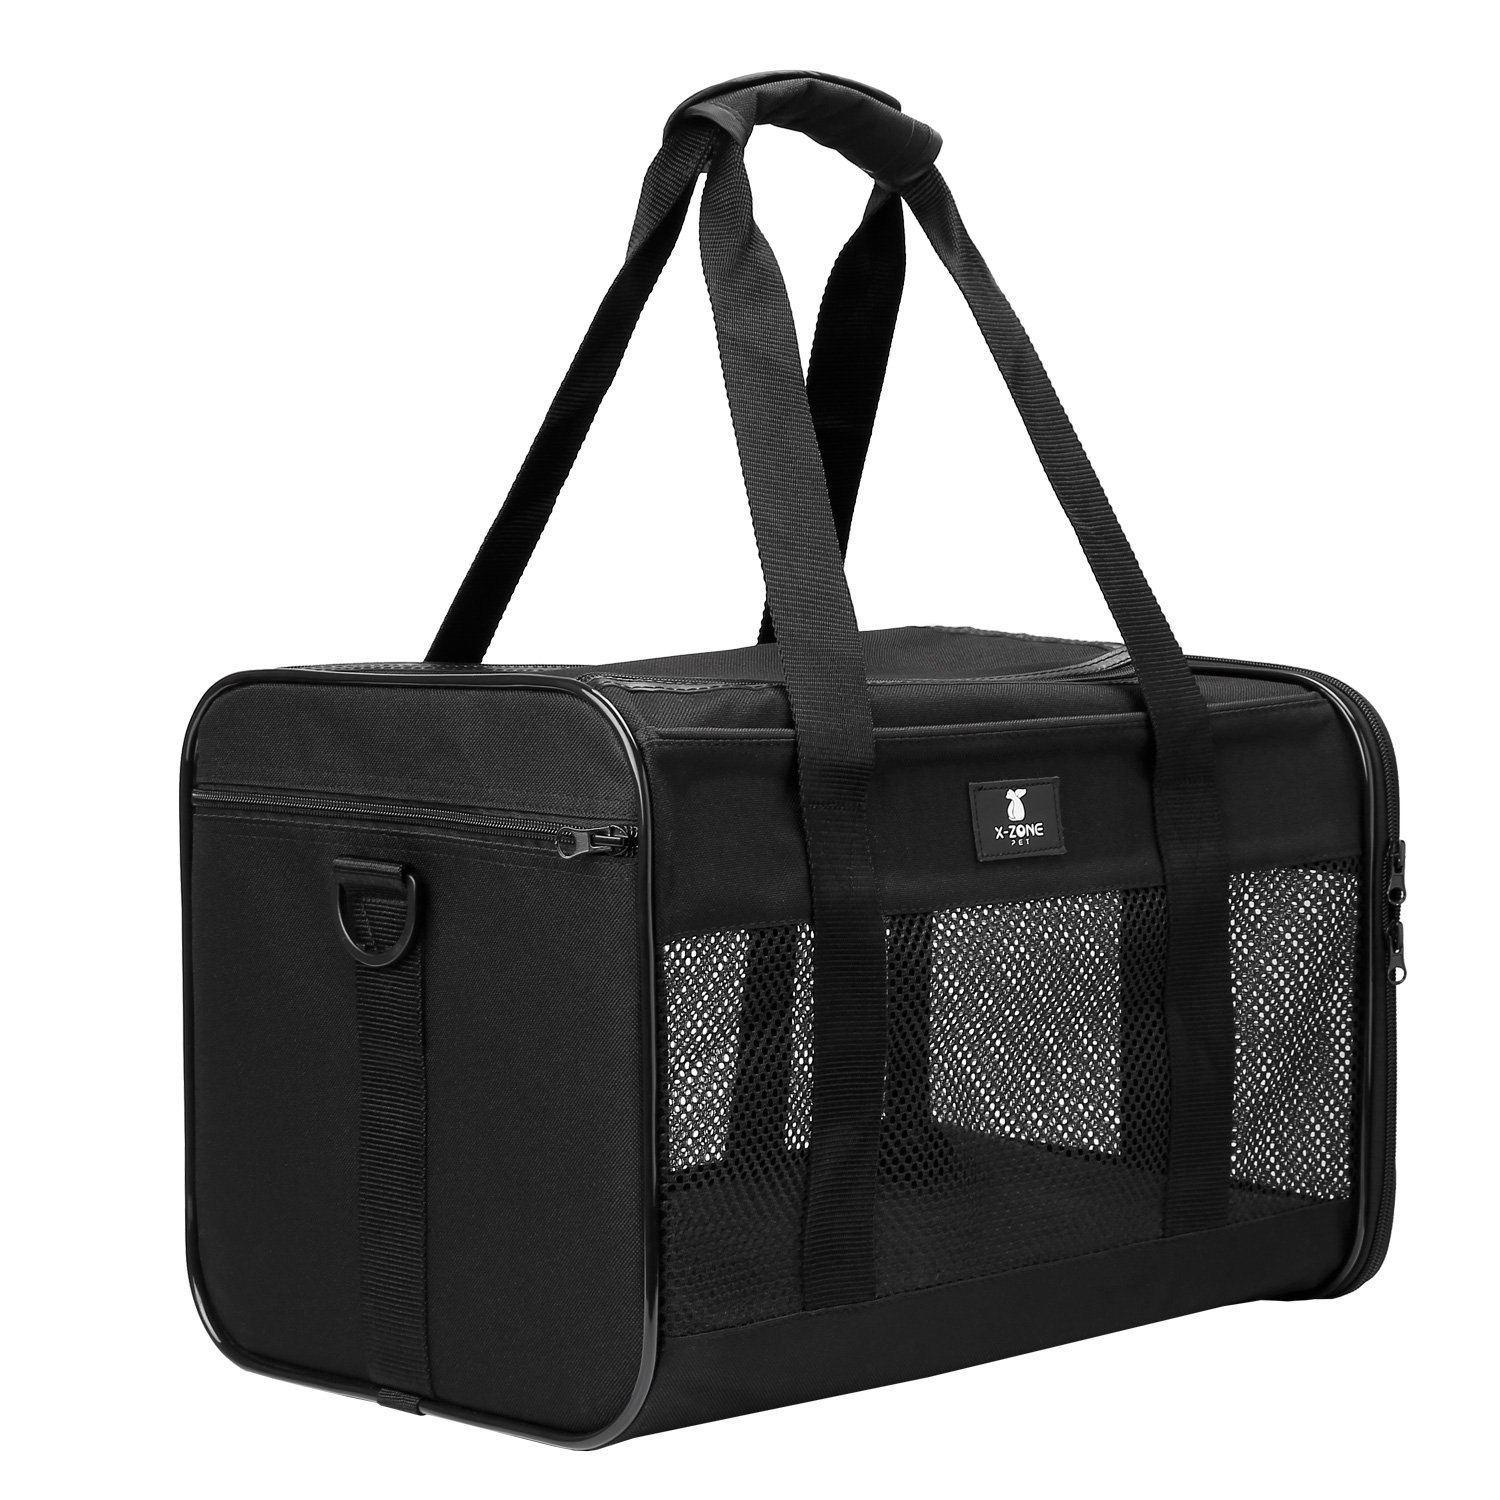 X-ZONE PET Airline Approved Soft-Sided Pet Travel Carrier for Dogs and Cats, Black by X-ZONE PET